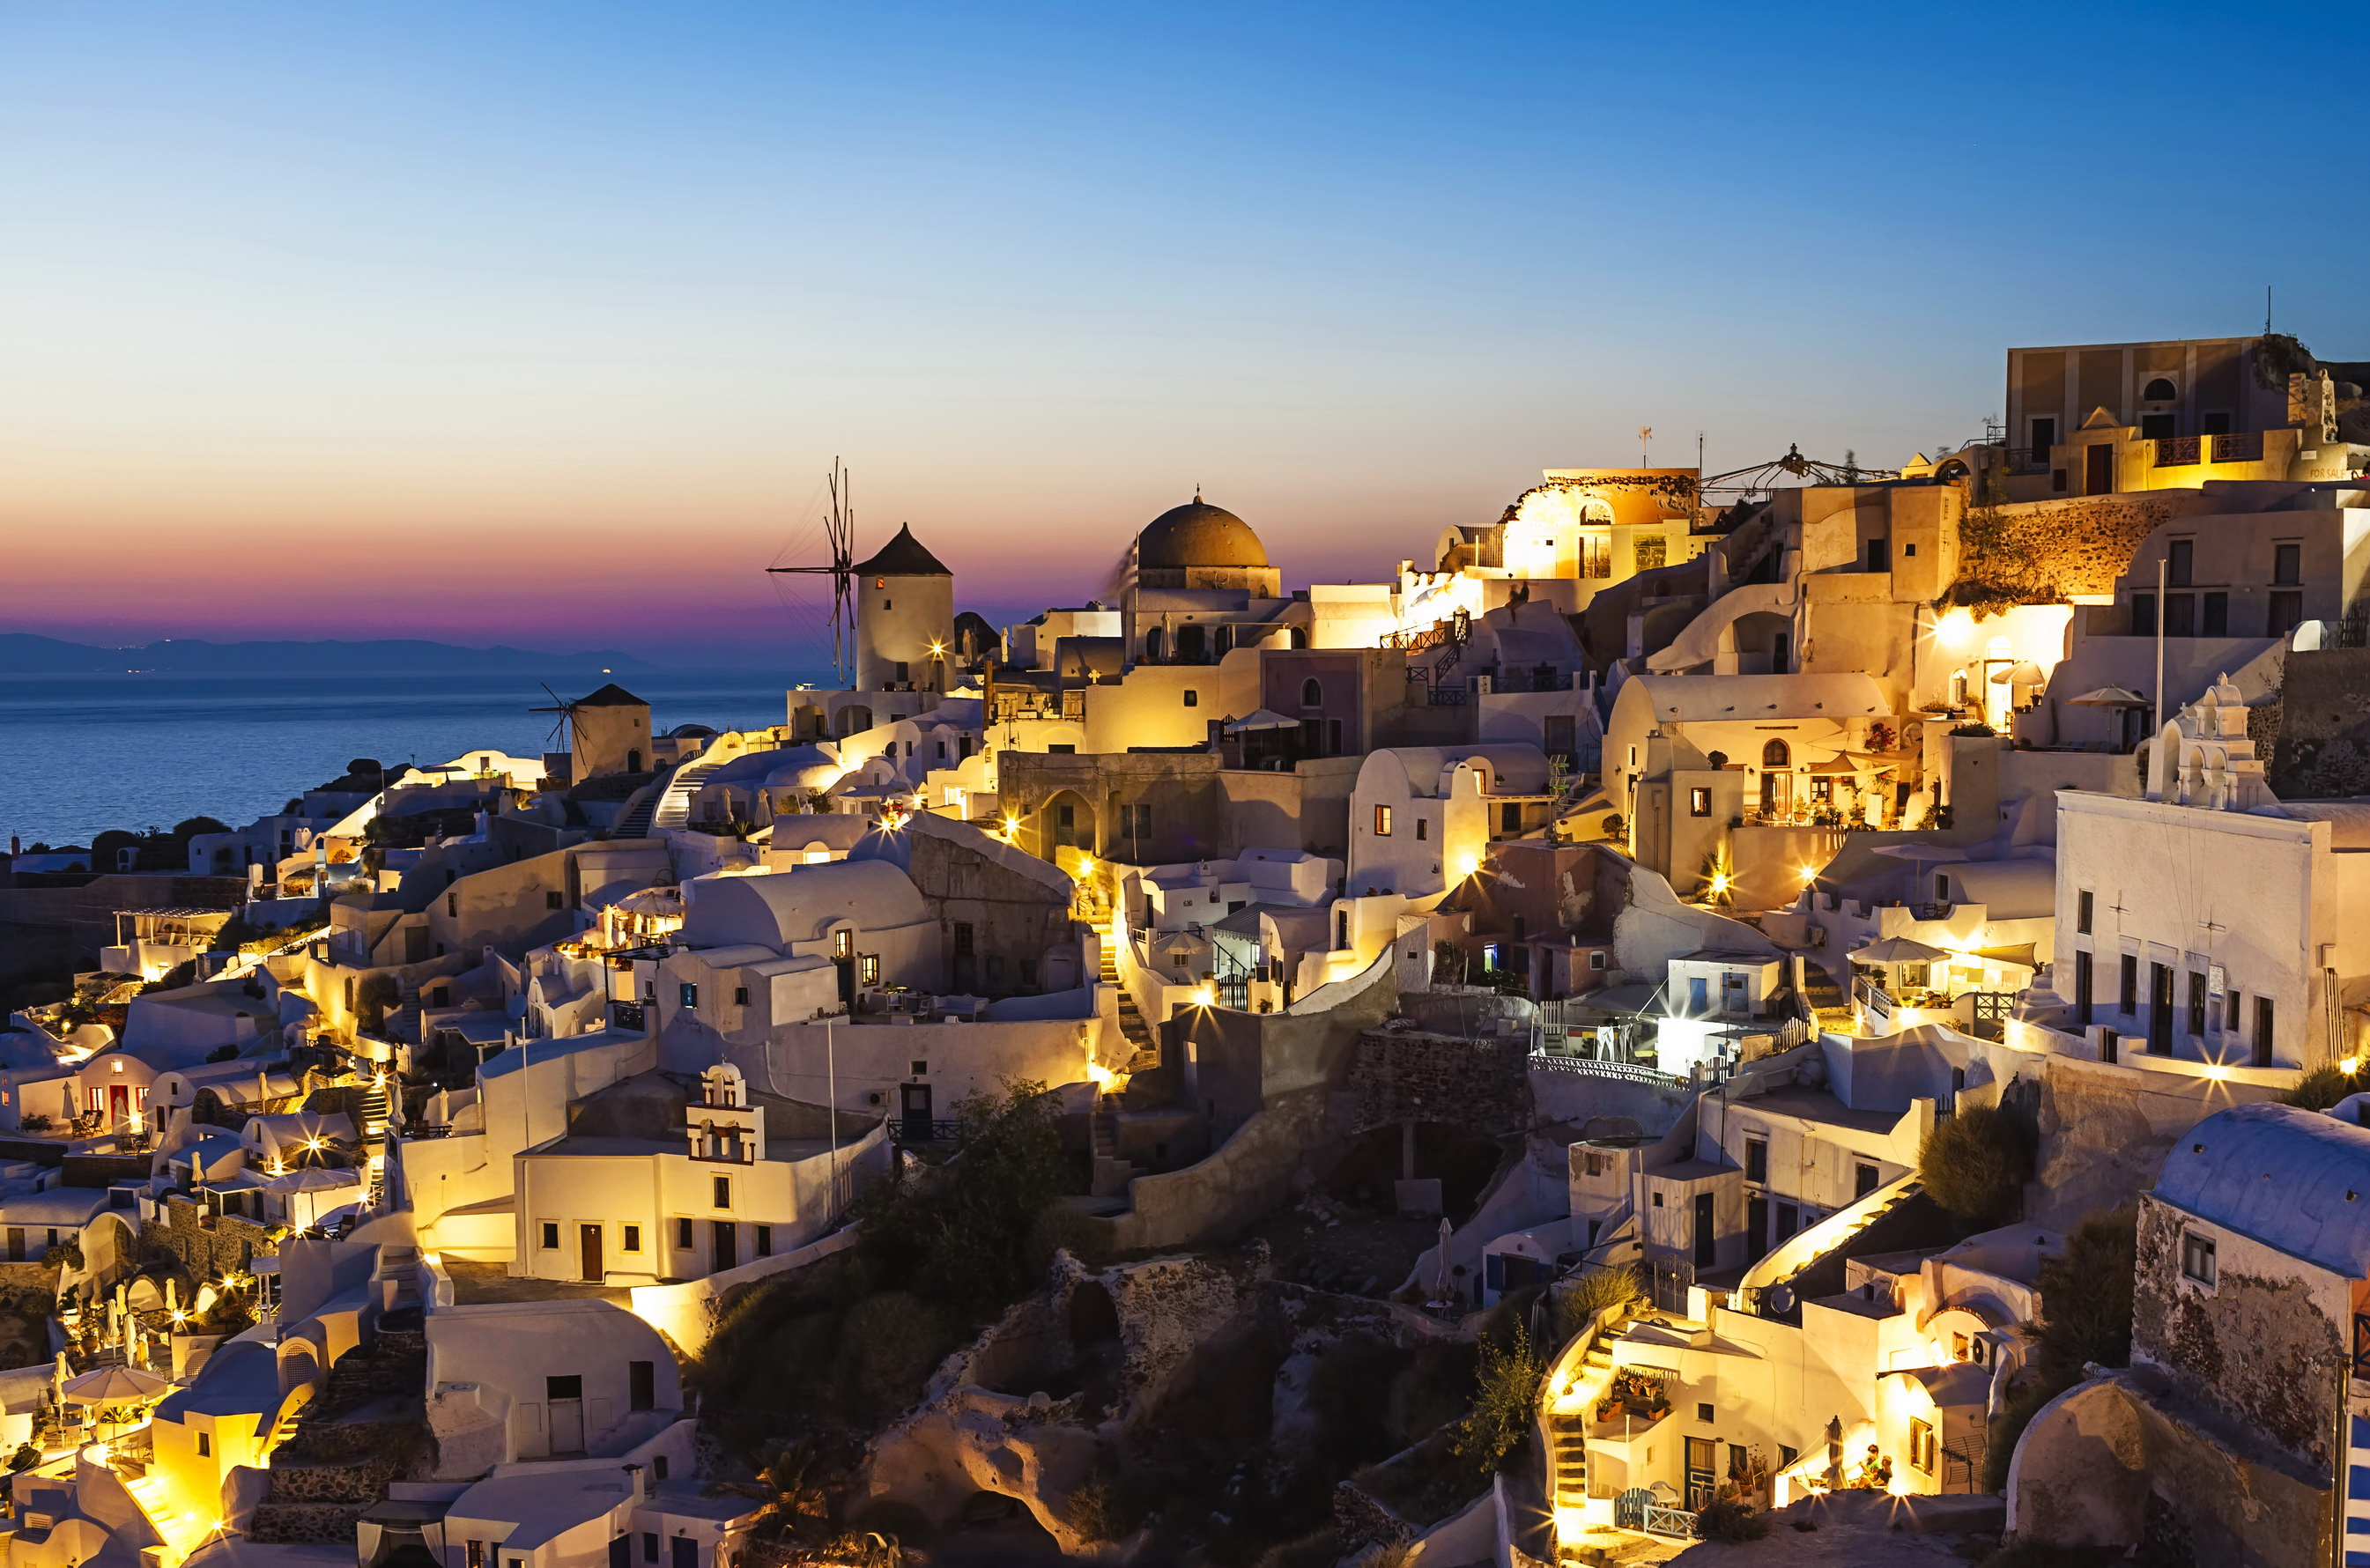 Santorini Wallpaper Night HD Wallpaper Background Images 2690x1780